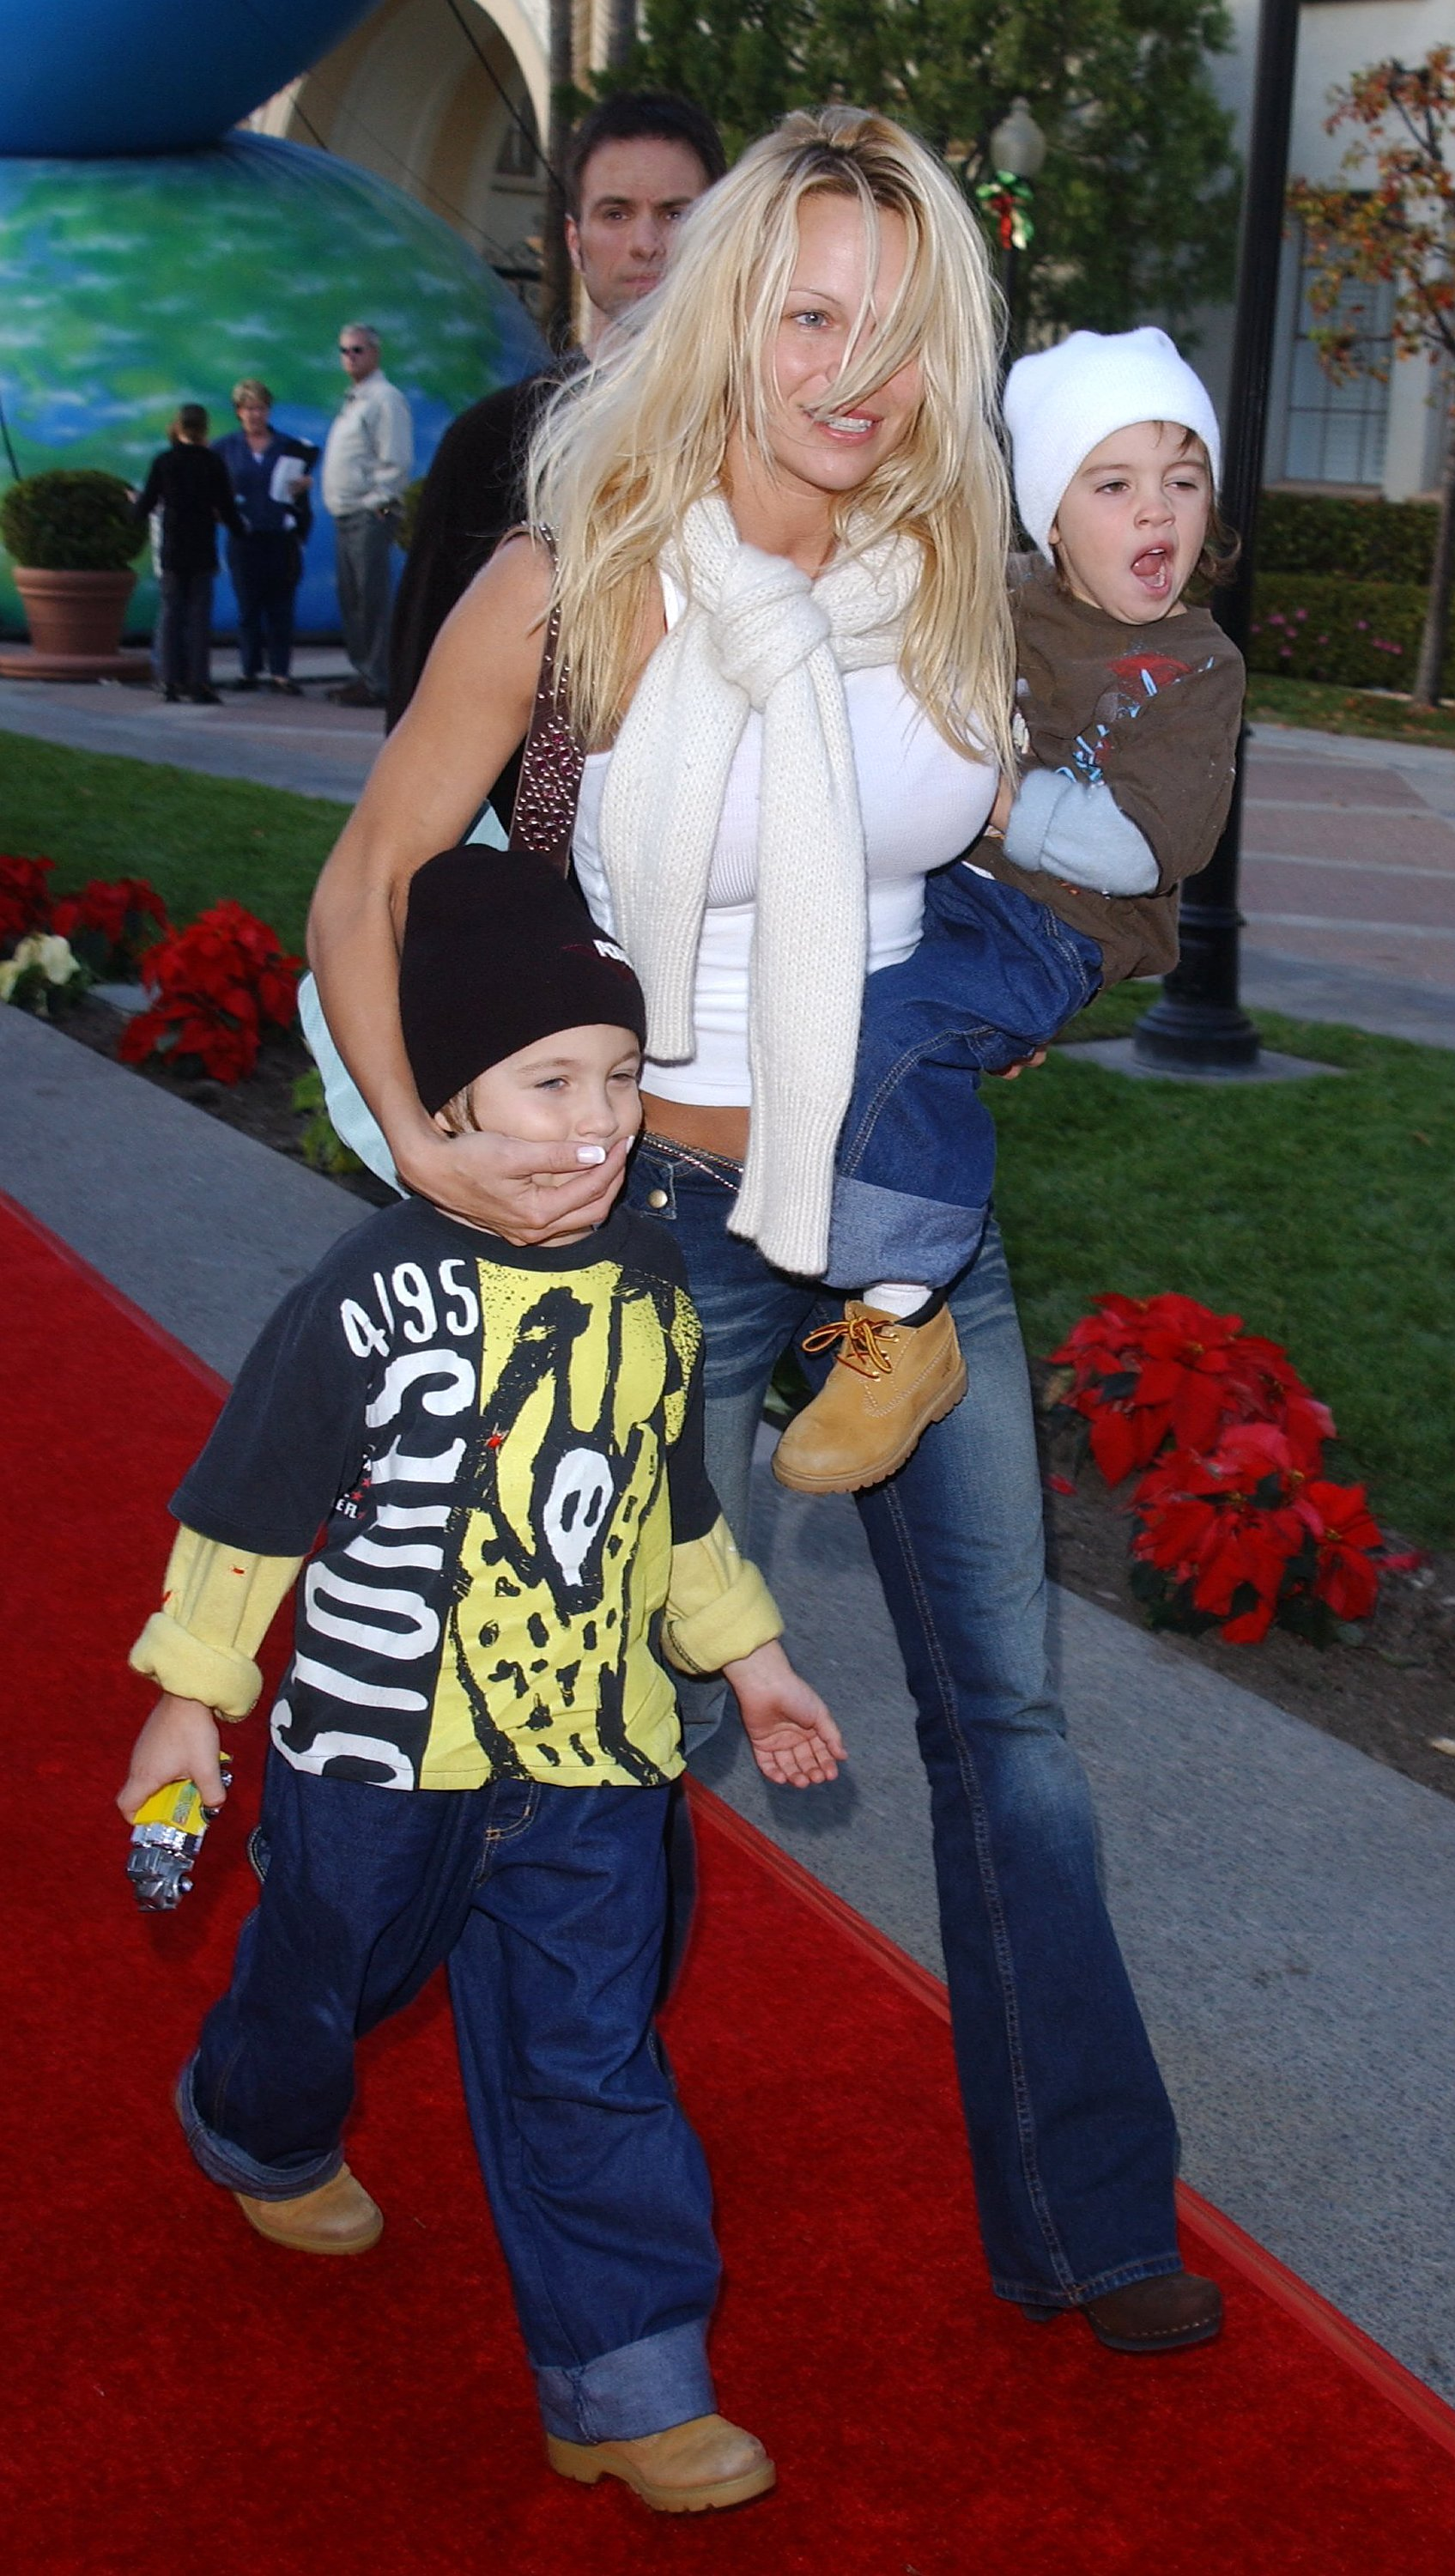 Pamela Anderson walking the red carpet with sons Dylan and Brandon at the Premiere of Jimmy Neutron on December 9, 2001 in Hollywood, CA. | Photo by Vince Bucci/Getty Images